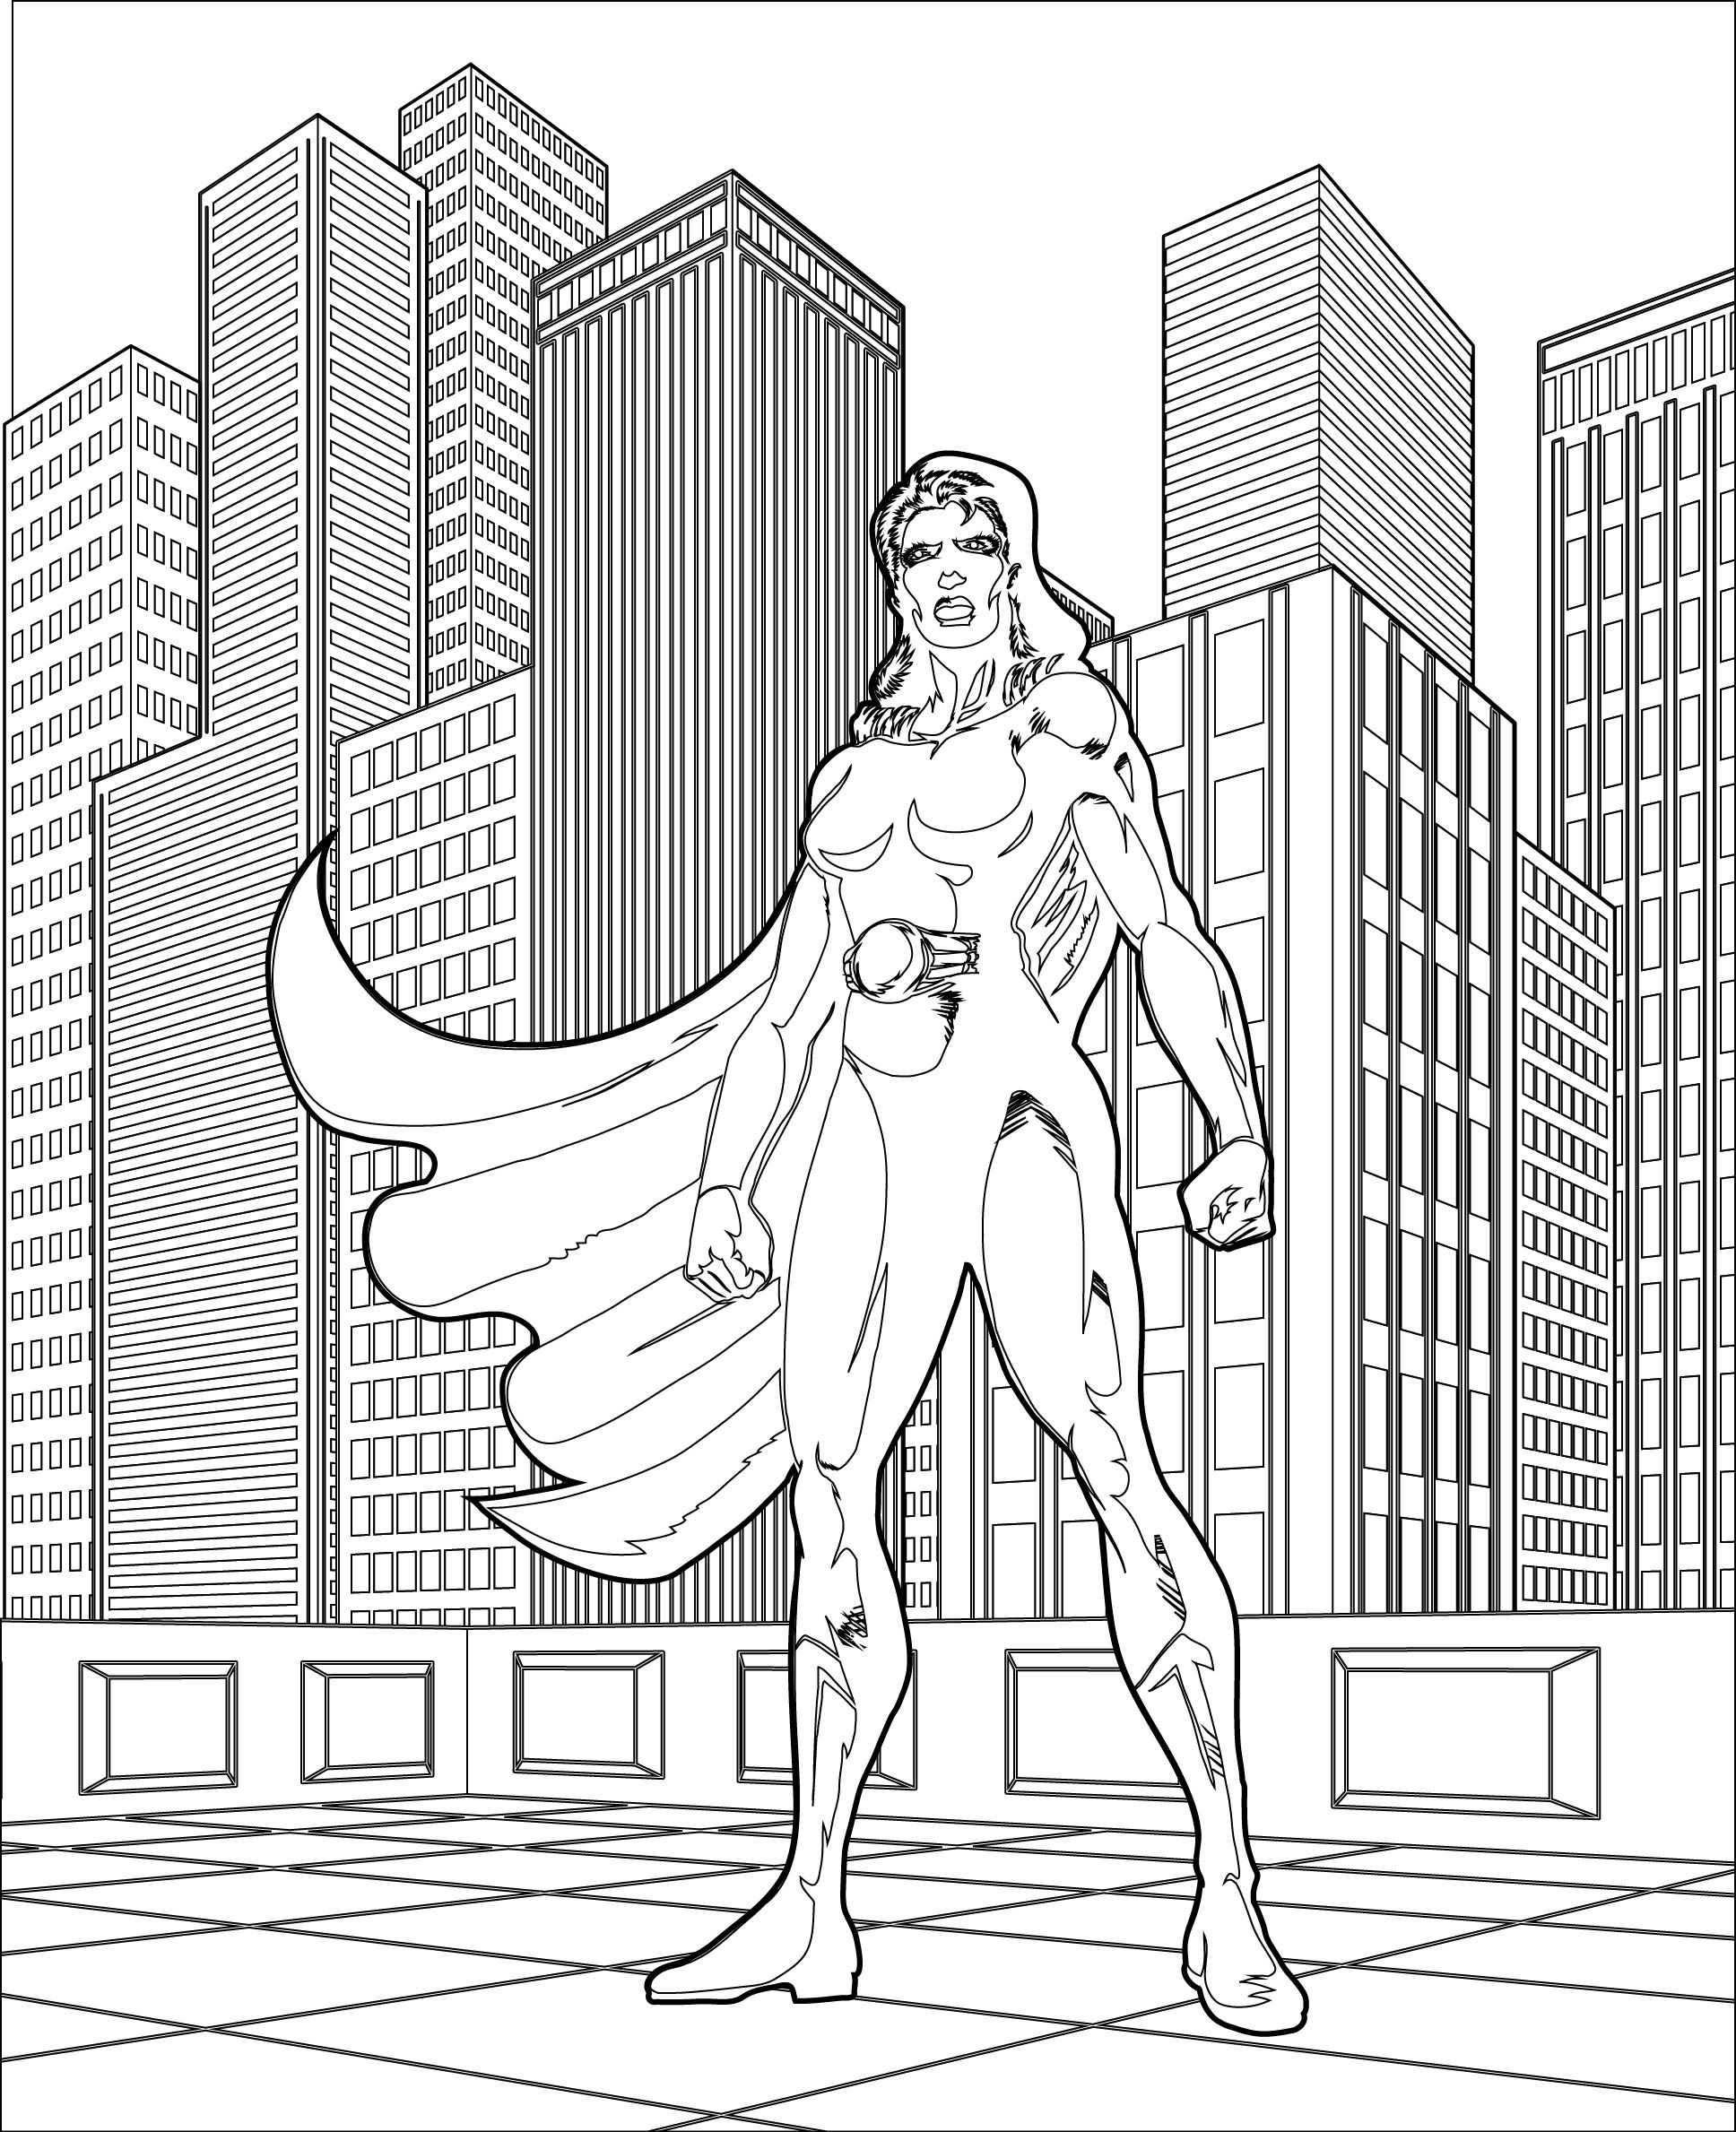 Bold Female Superhero Coloring Page In The City